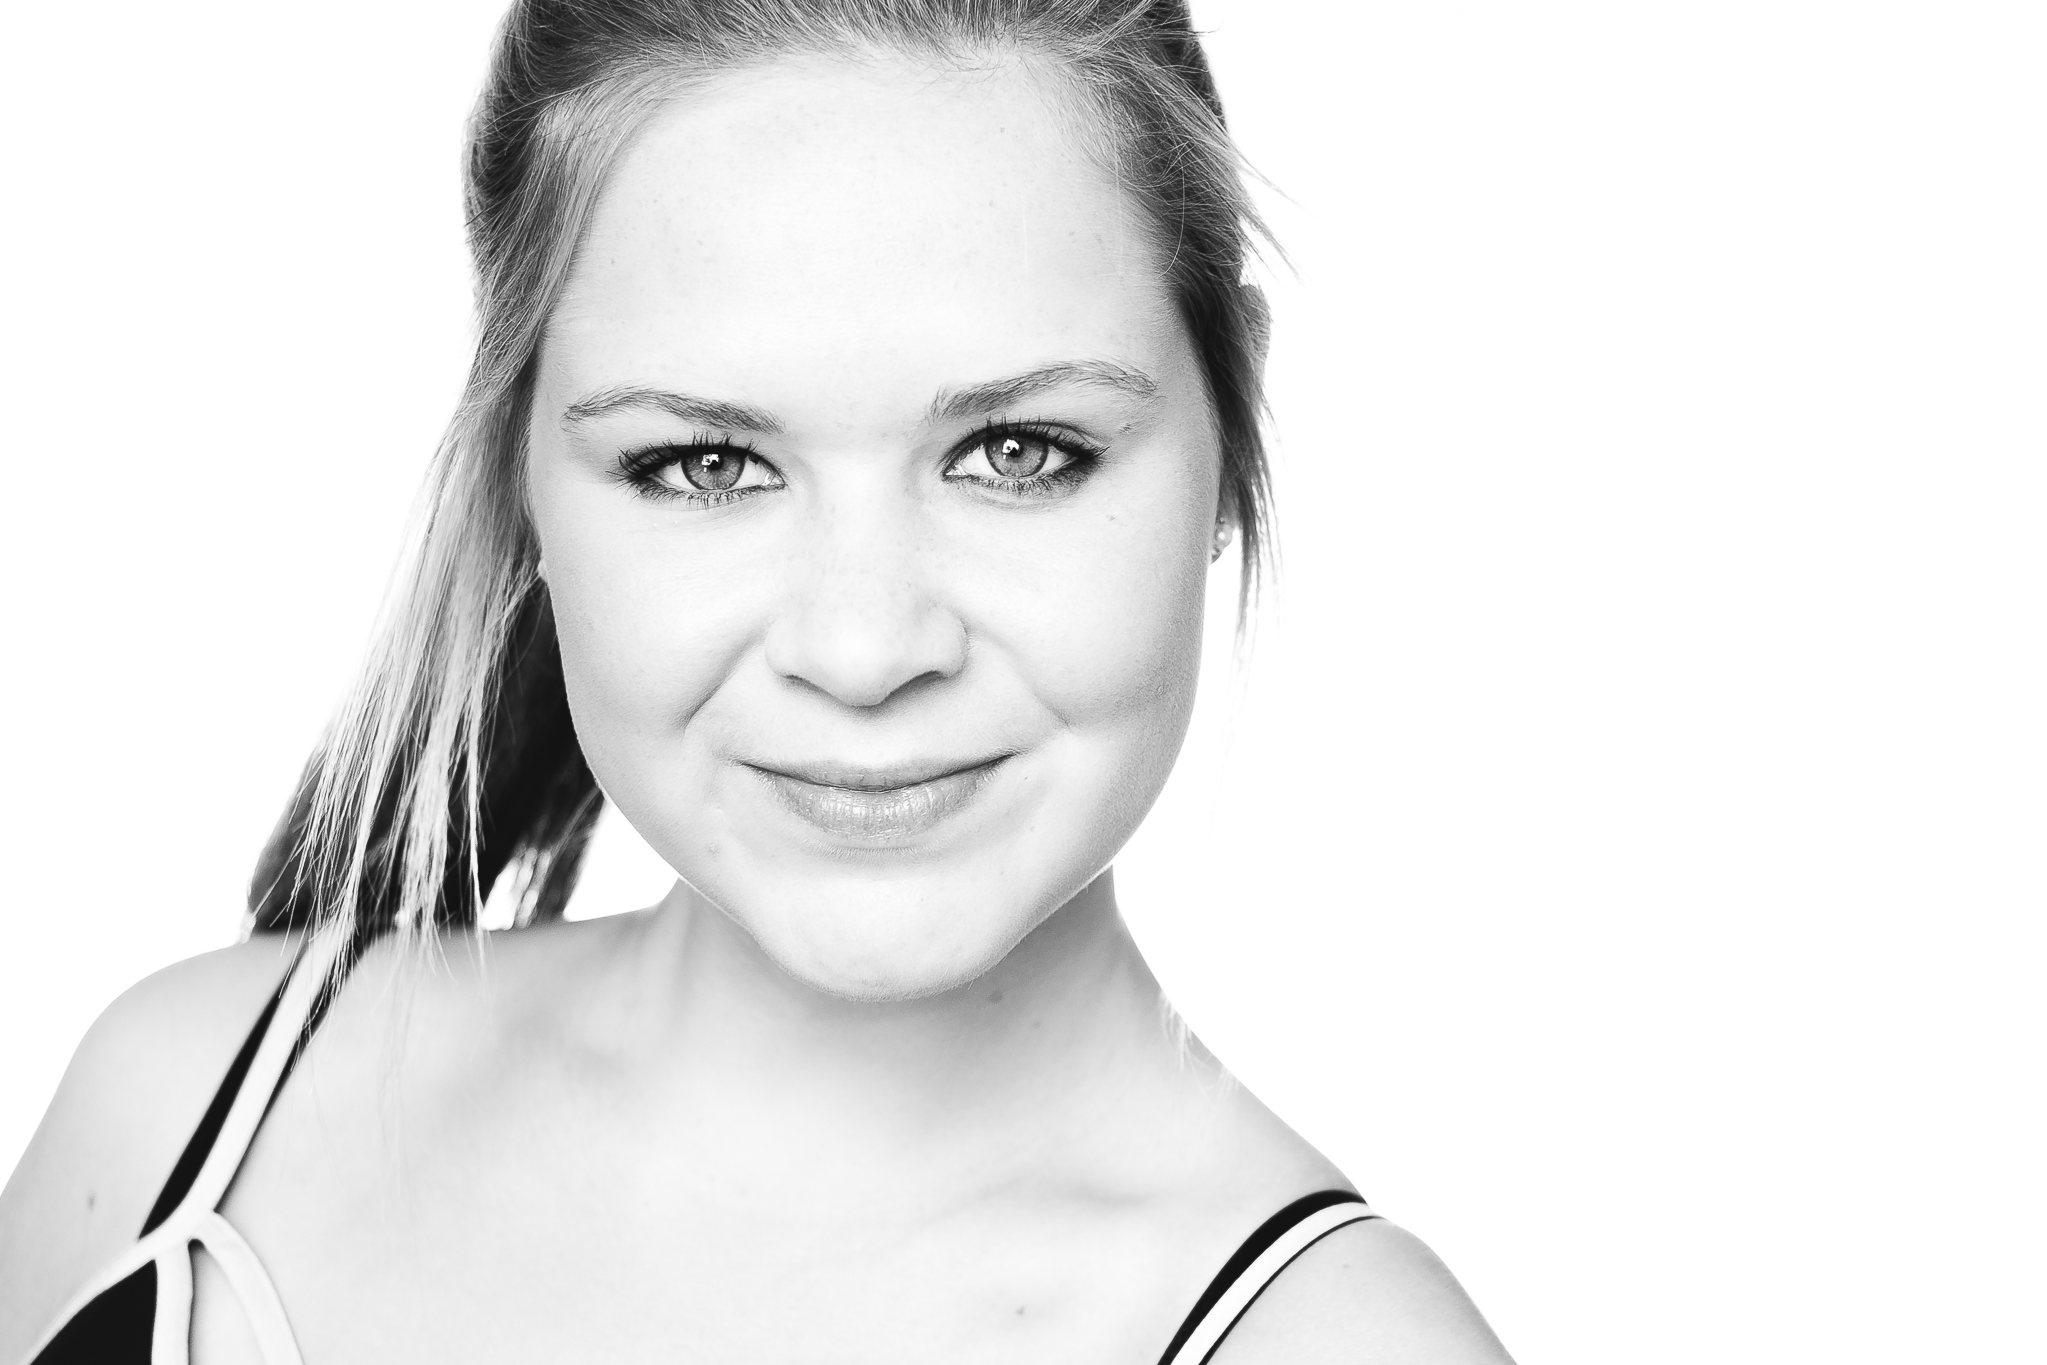 A headshot session for Sophie by professional headshot photographer andre goosen for Boem Headshots in adelaide